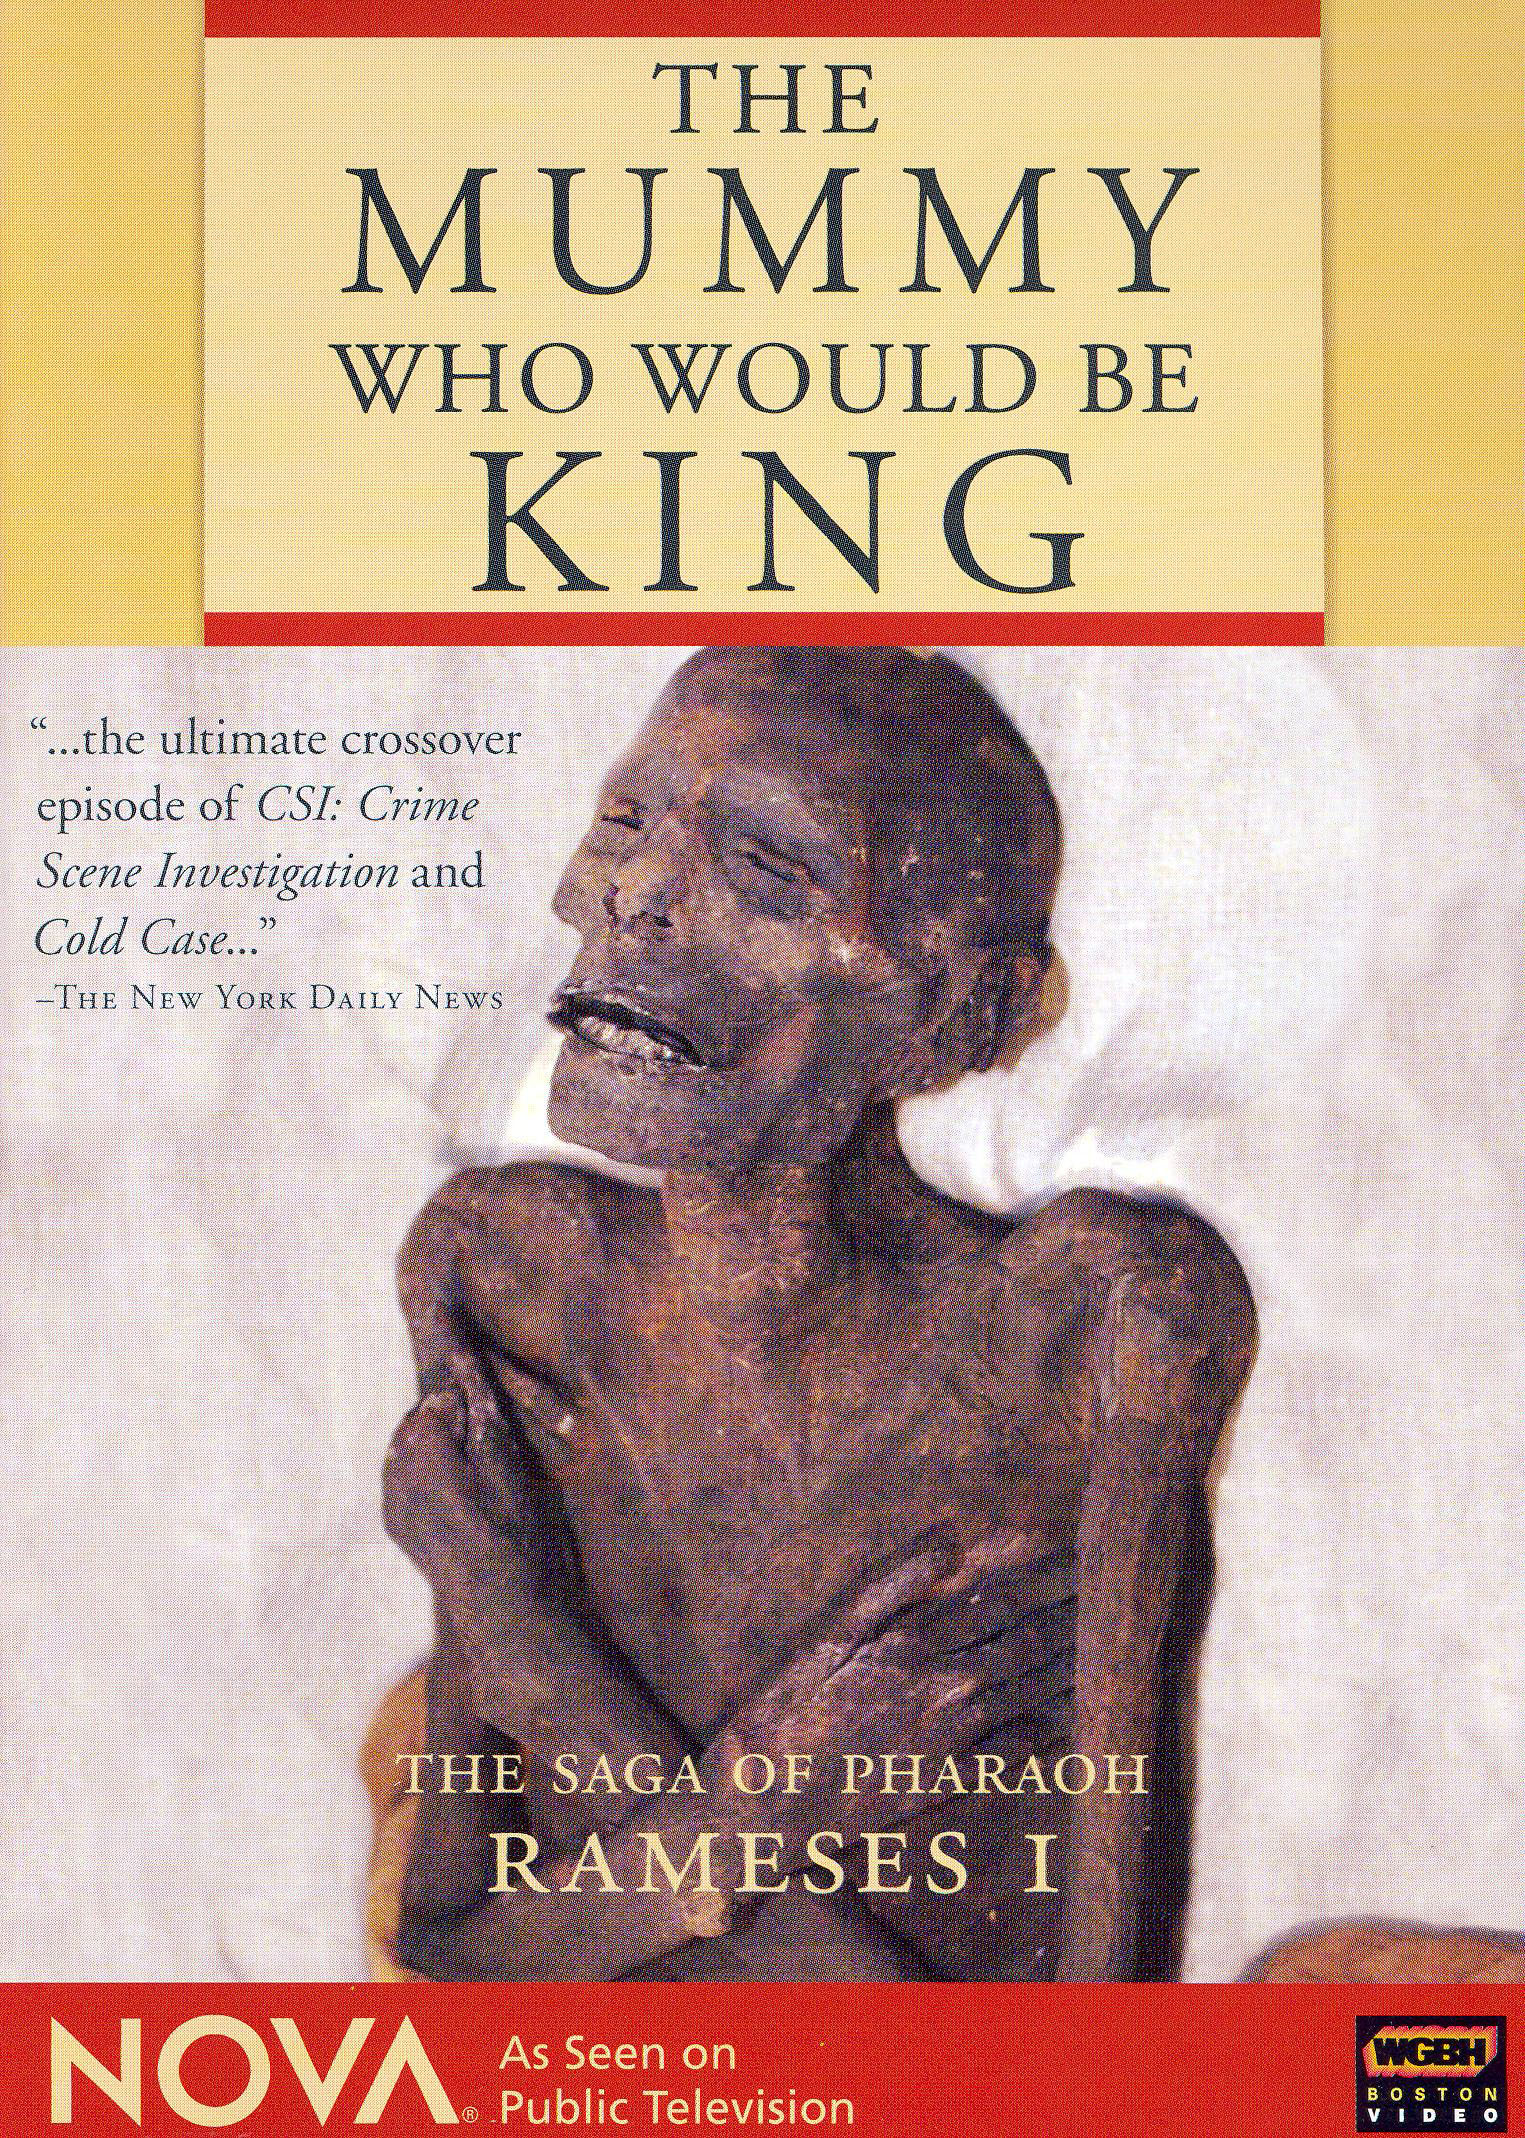 NOVA: The Mummy Who Would Be King - The Saga of Pharaoh Rameses I